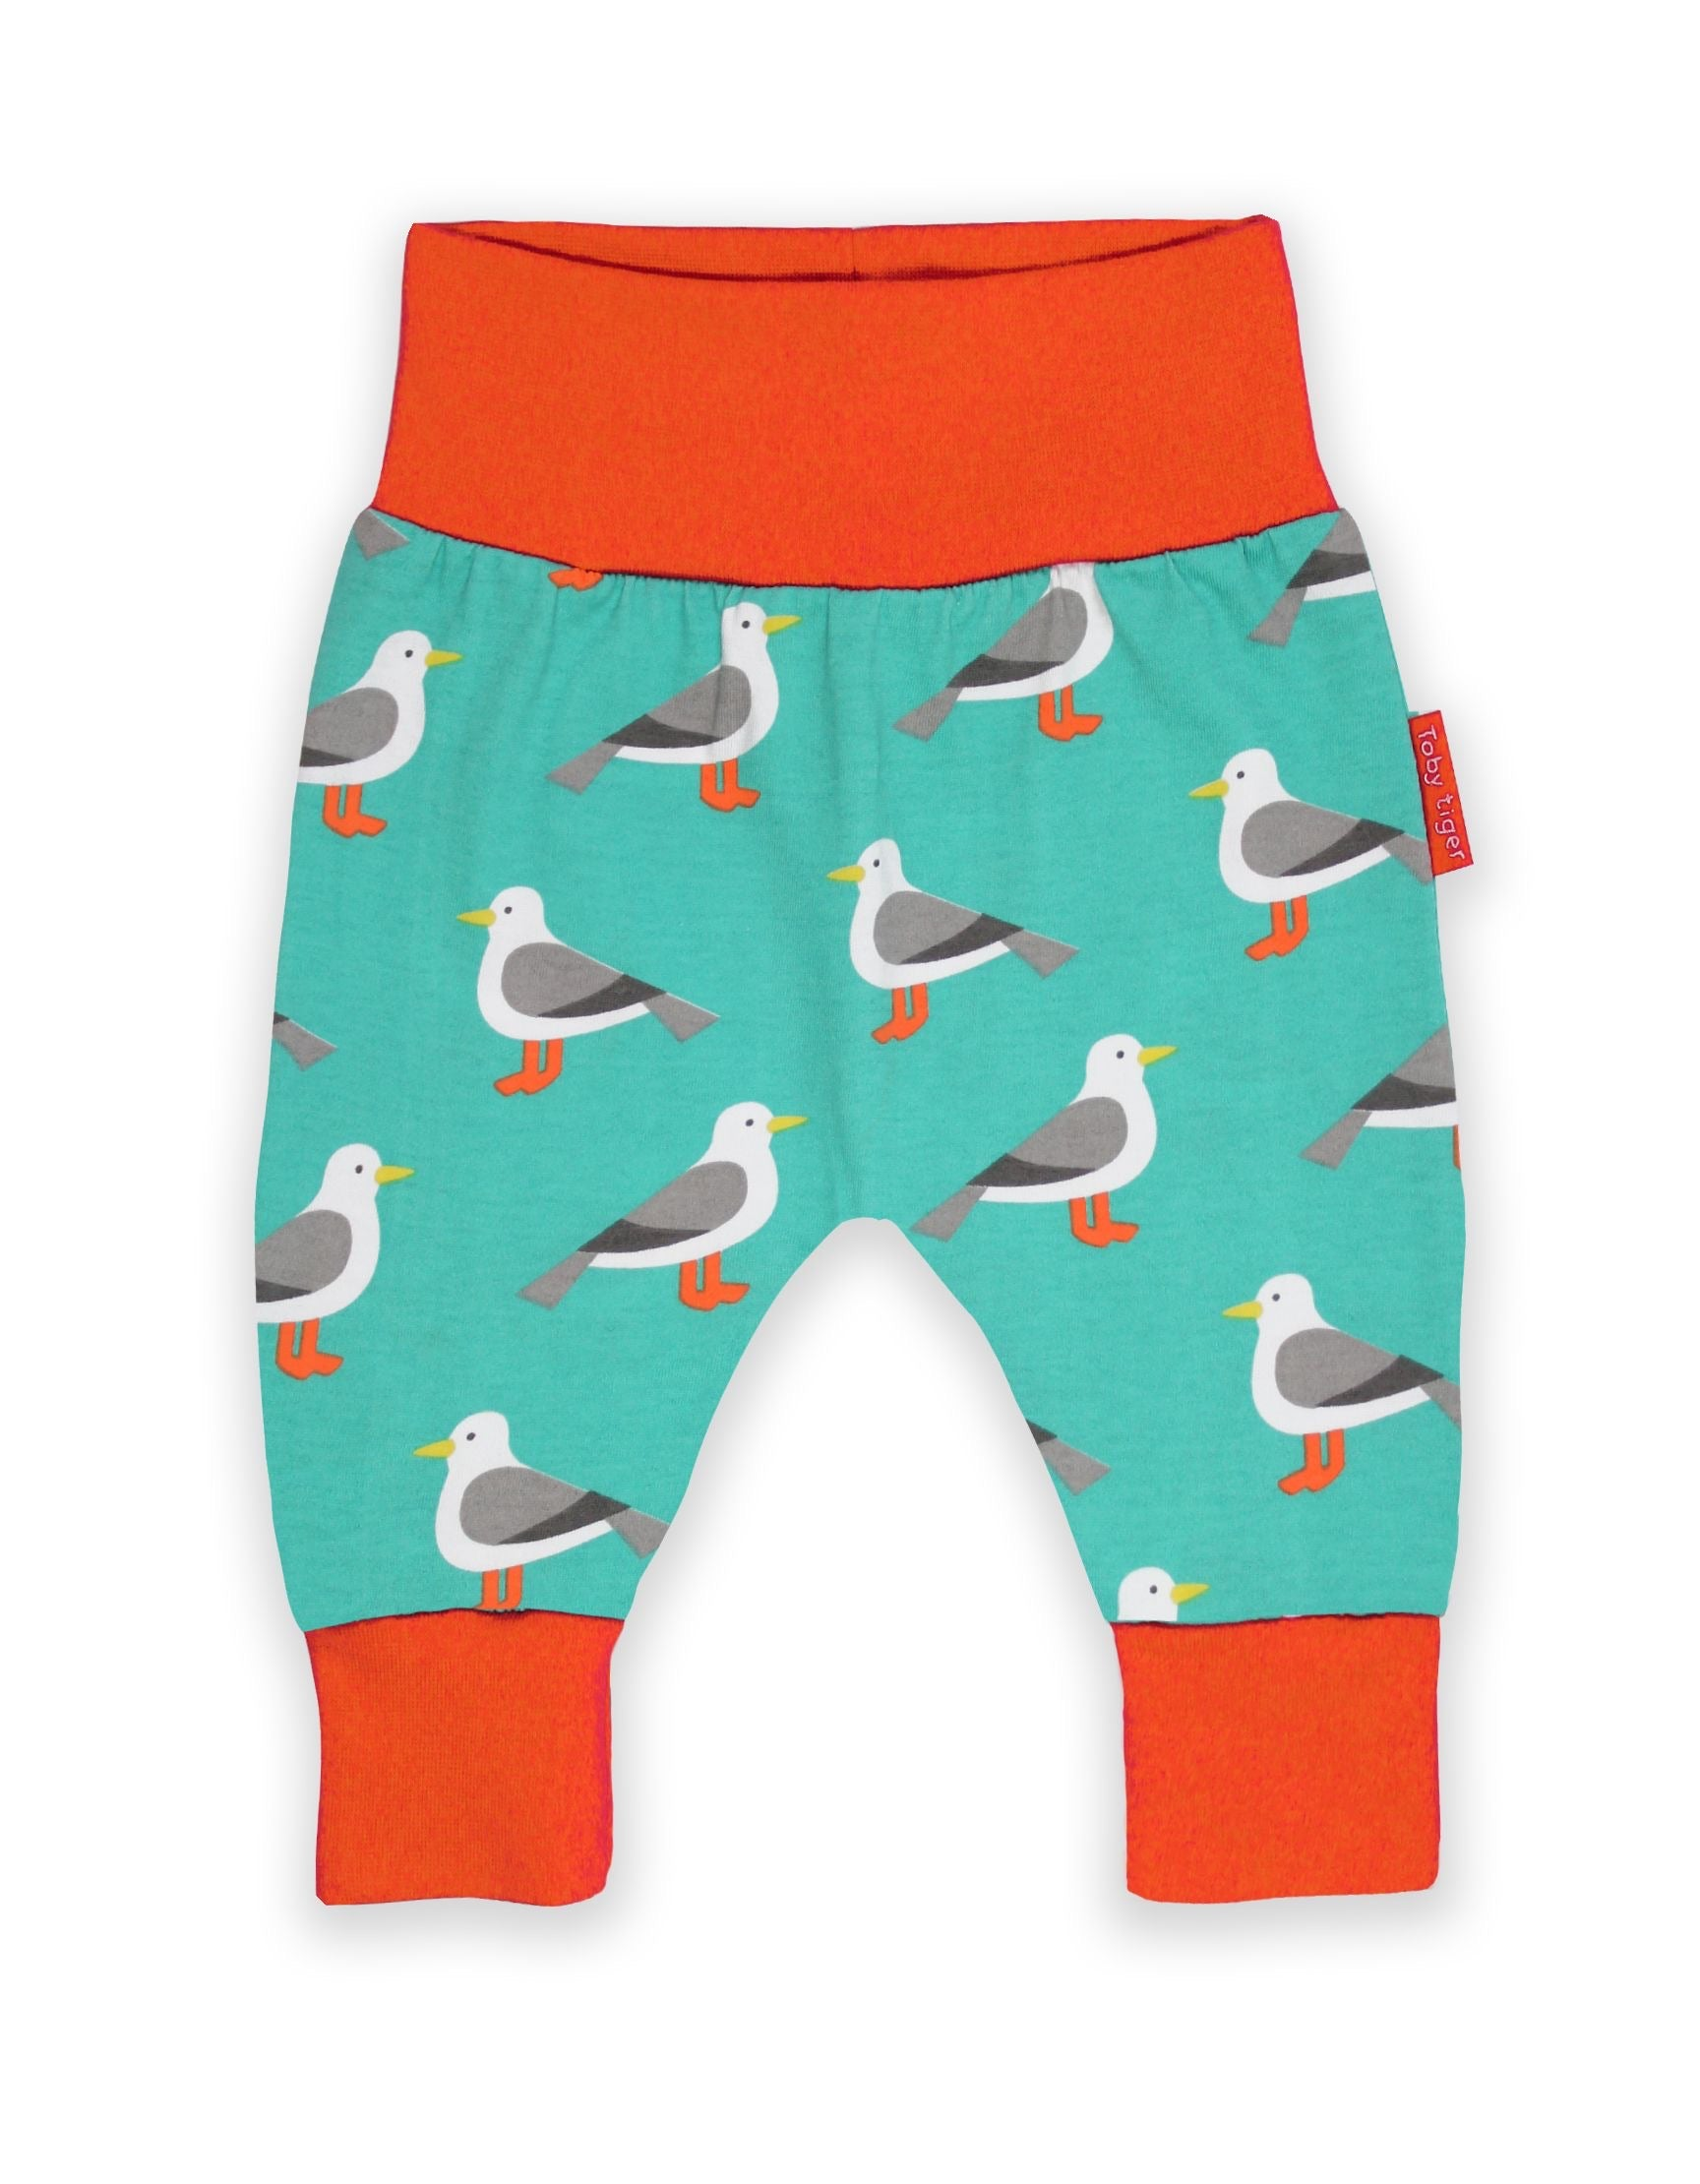 Organic Seagull Yoga Pants - Wild Atlantic Living